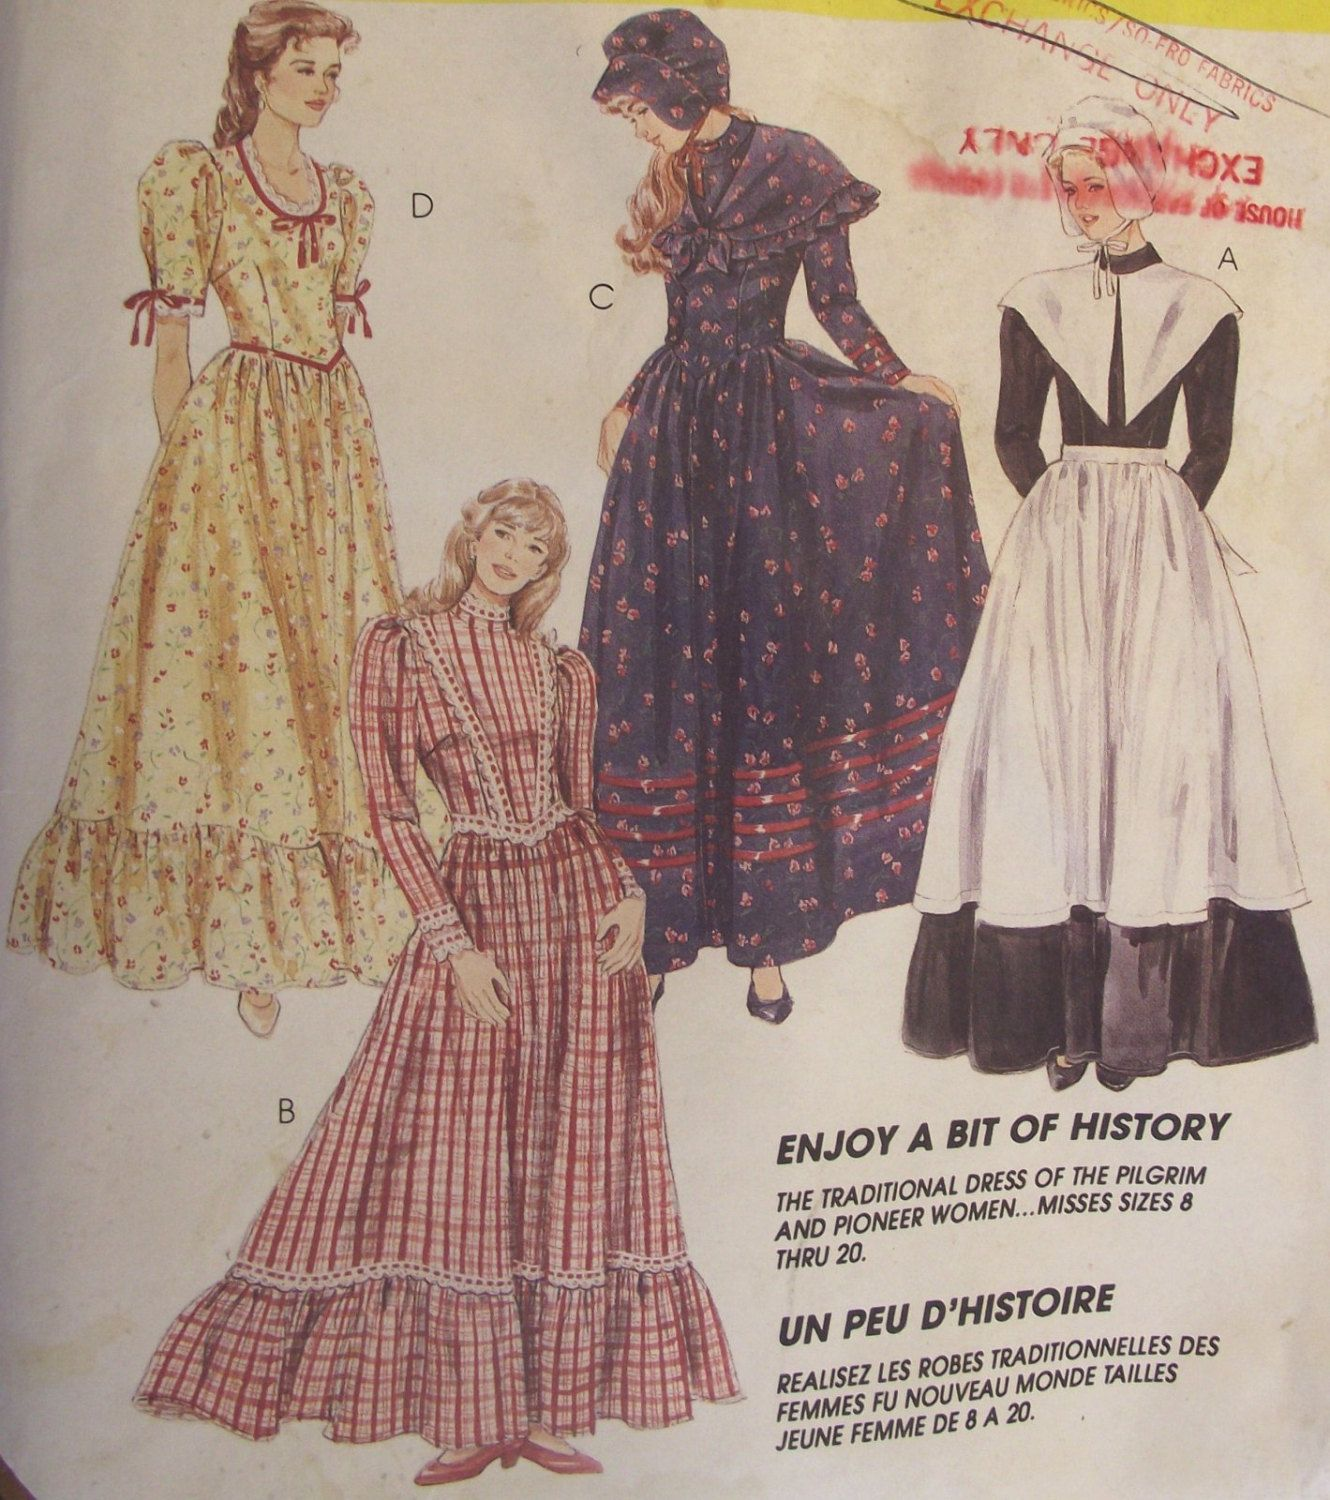 Pilgrim Pioneer Costumes McCall's 7563 Sewing Pattern UNCUT Long Dresses Apron Hat Shawl Ruffles 8-12 Halloween Historical Reinactment #49E by AdriennesAtticStore on Etsy